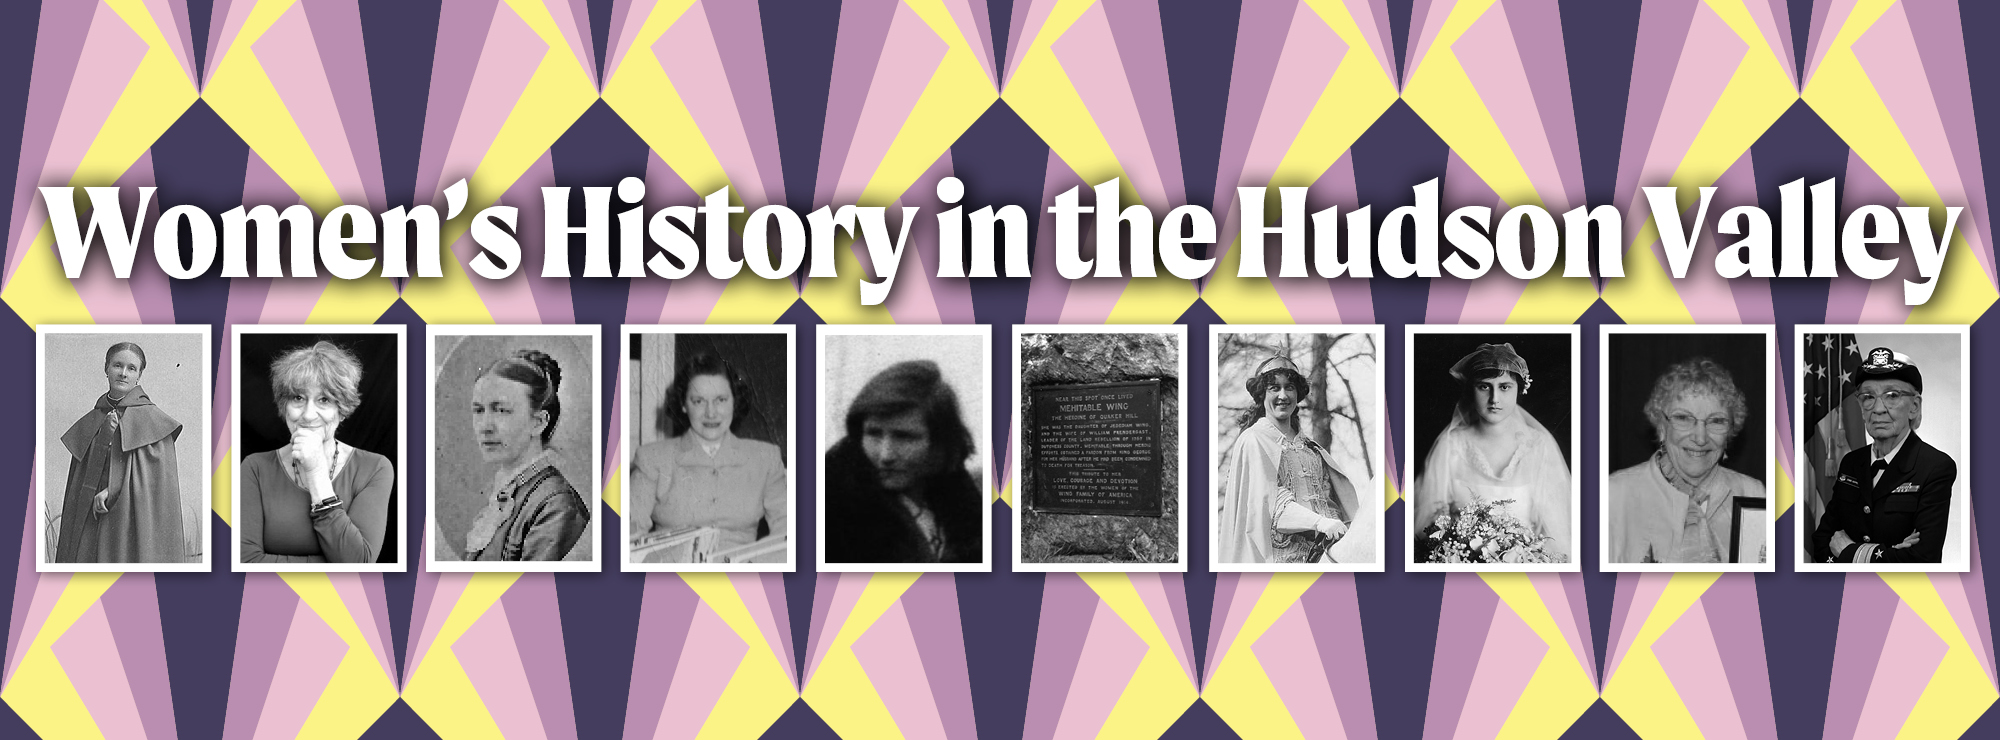 2020 Women's History in the Hudson Valley